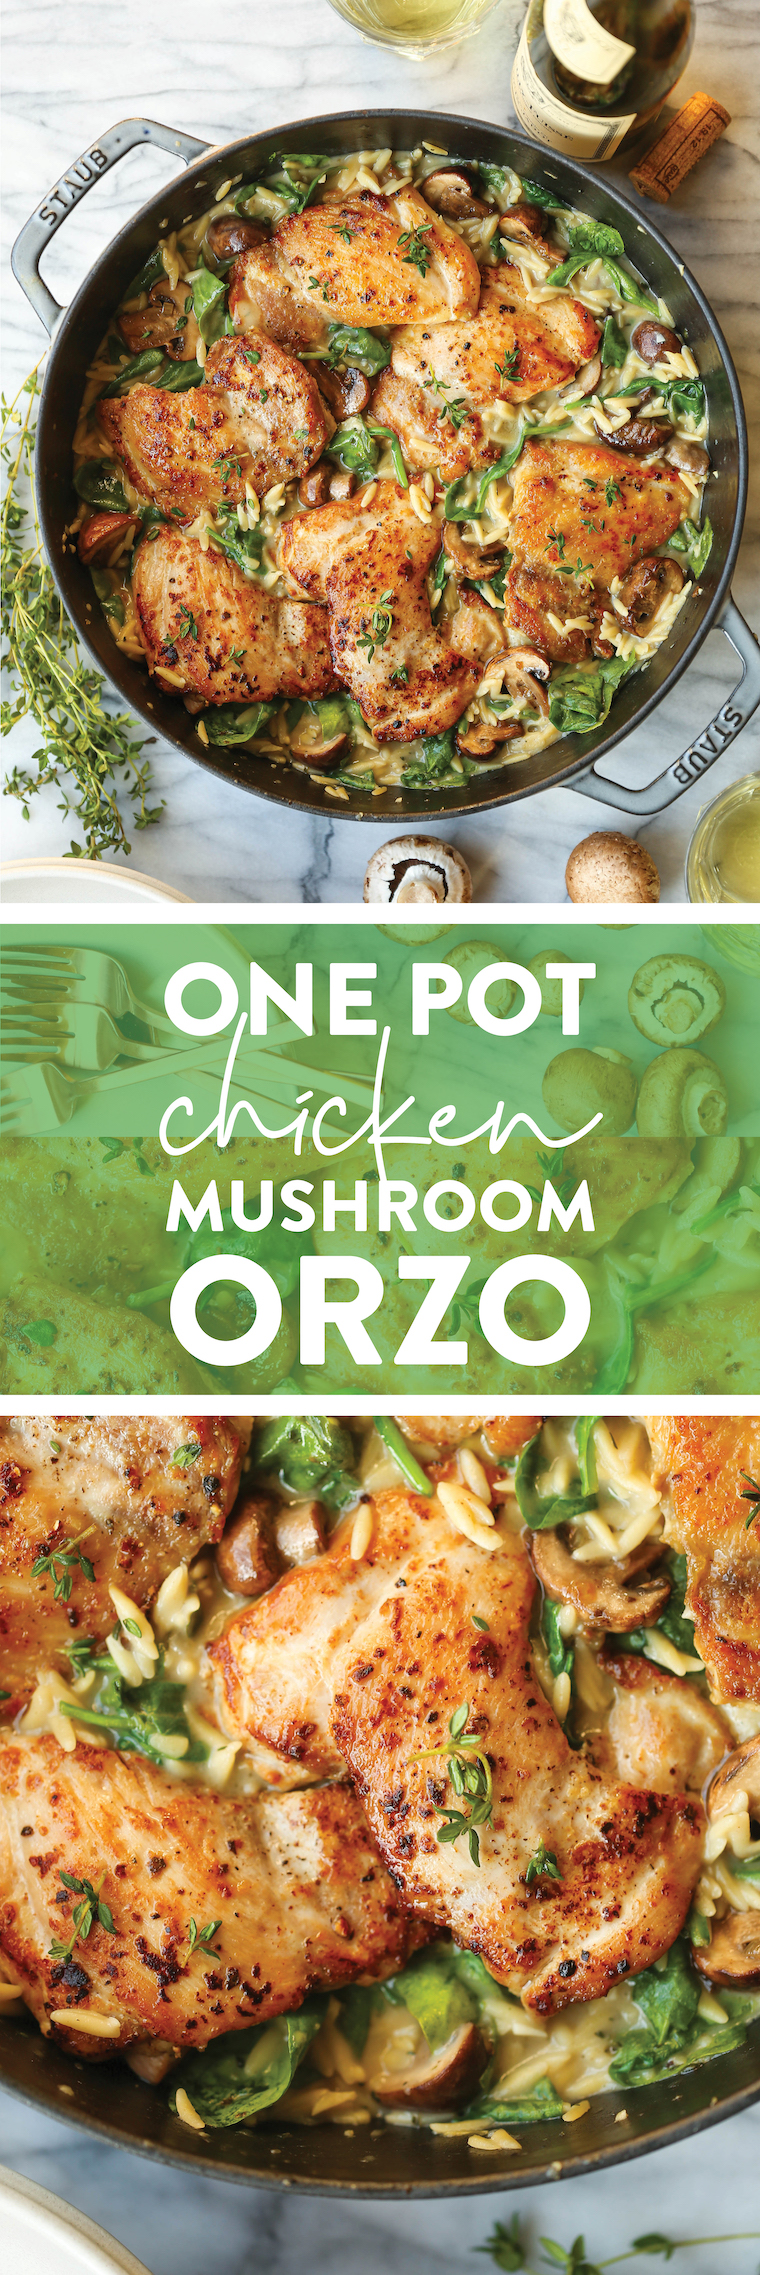 One Pot Chicken and Mushroom Orzo - Amazingly creamy orzo with juicy chicken, mushrooms and baby spinach. All made in one skillet, even the uncooked pasta!